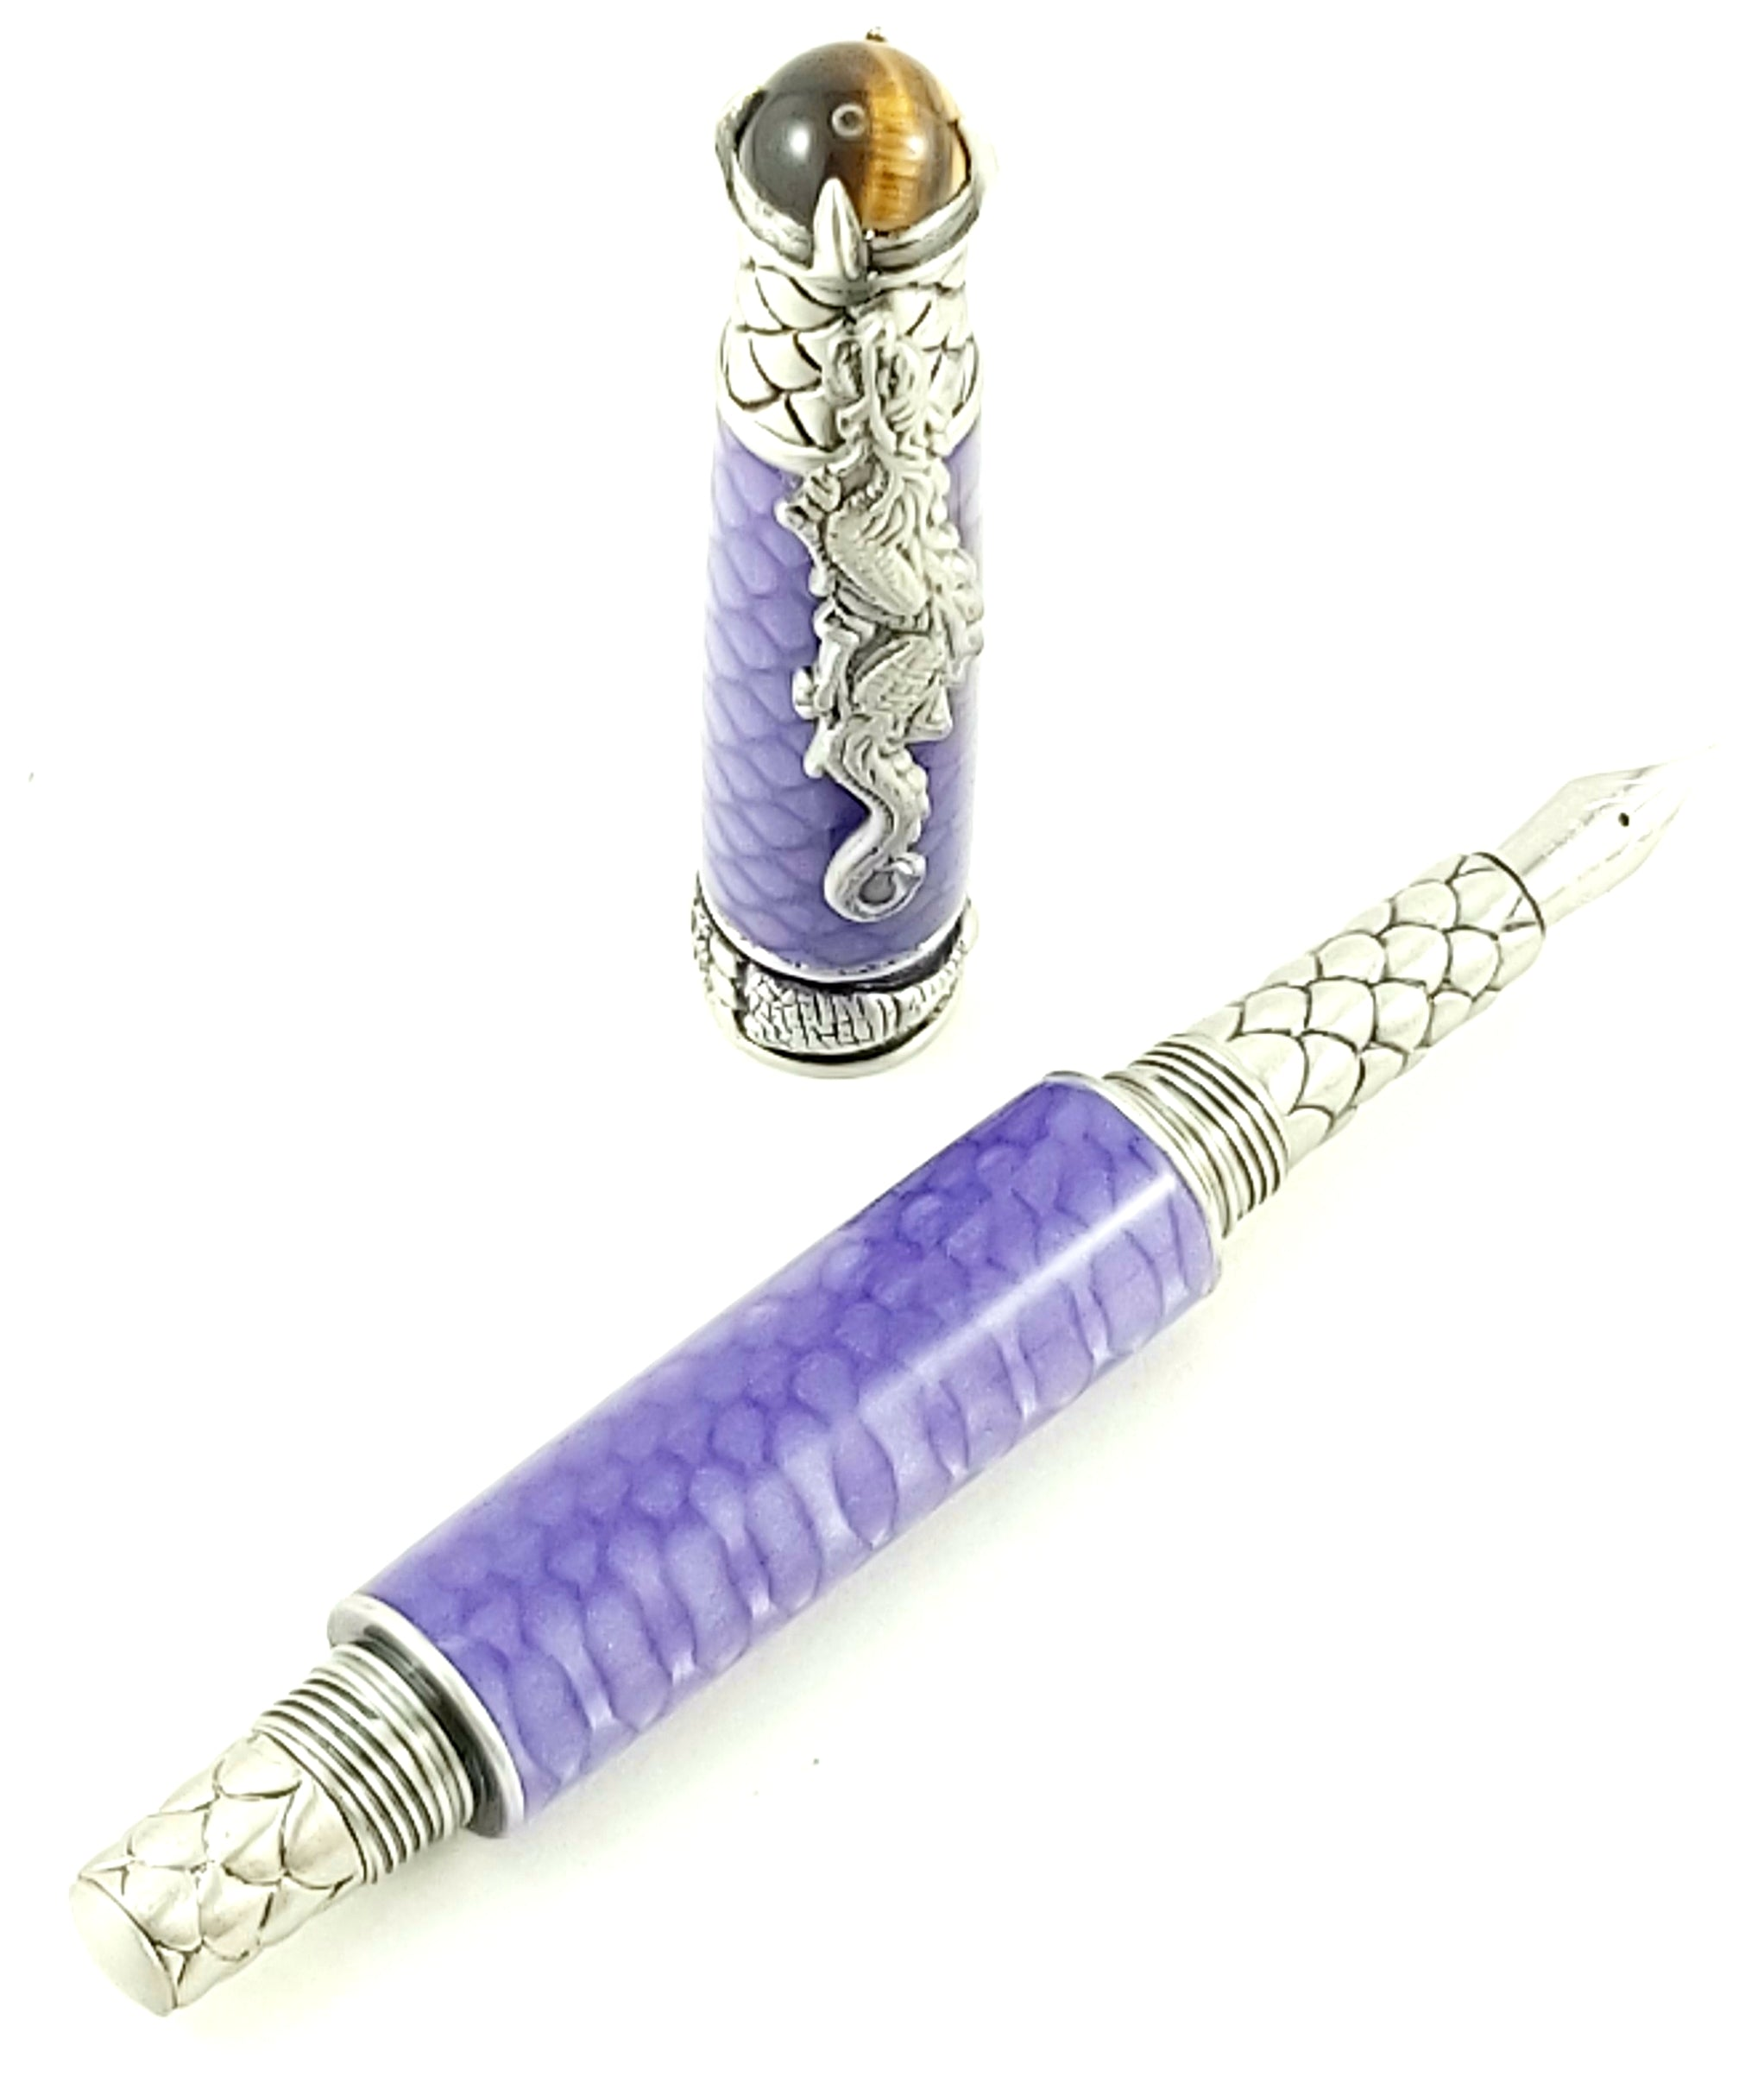 Antique Pewter Dragon Fountain Pen #2484